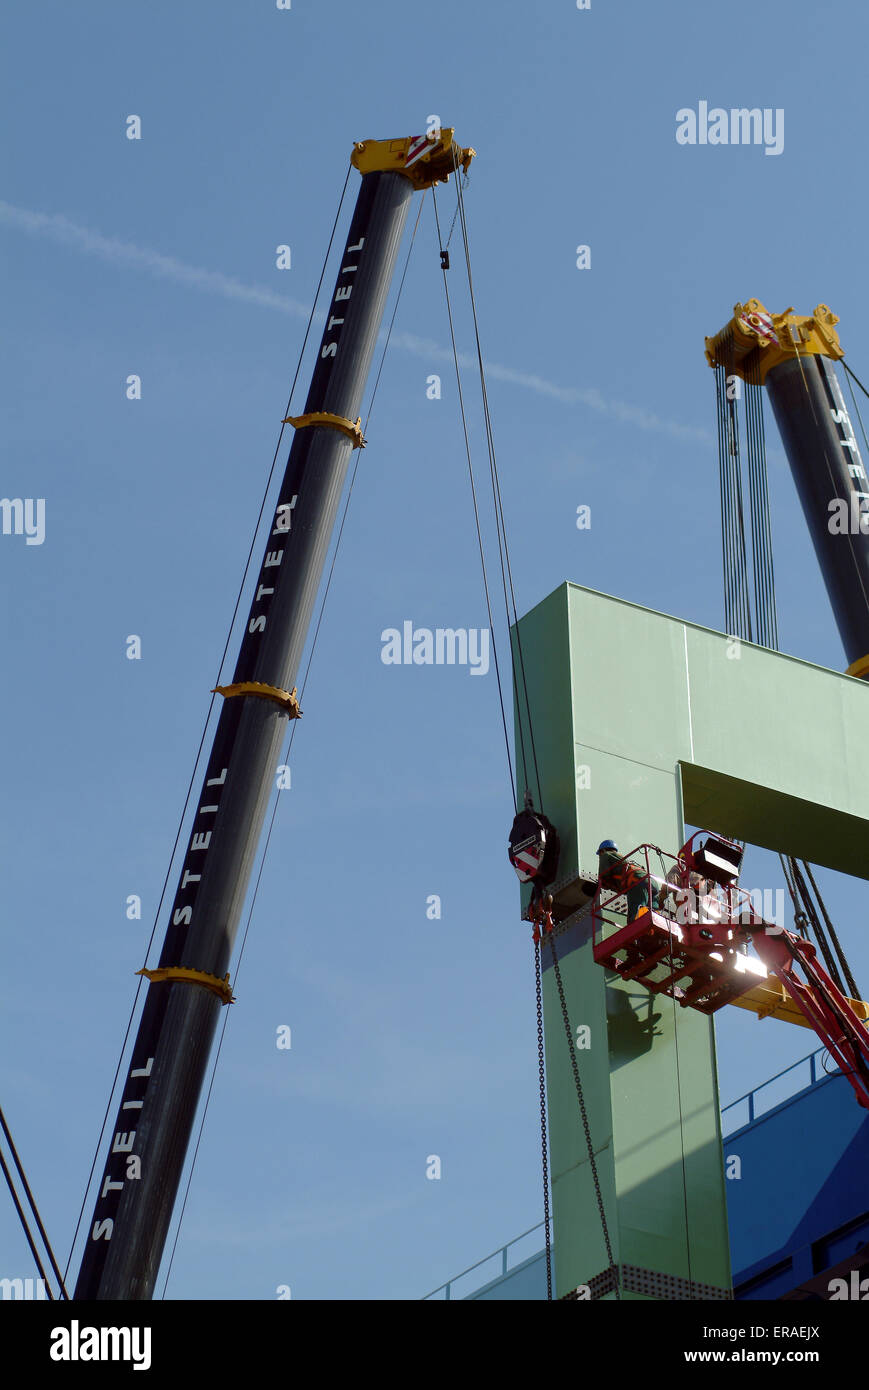 Two Worker installing a metal bridgehead in a harbor - Stock Image